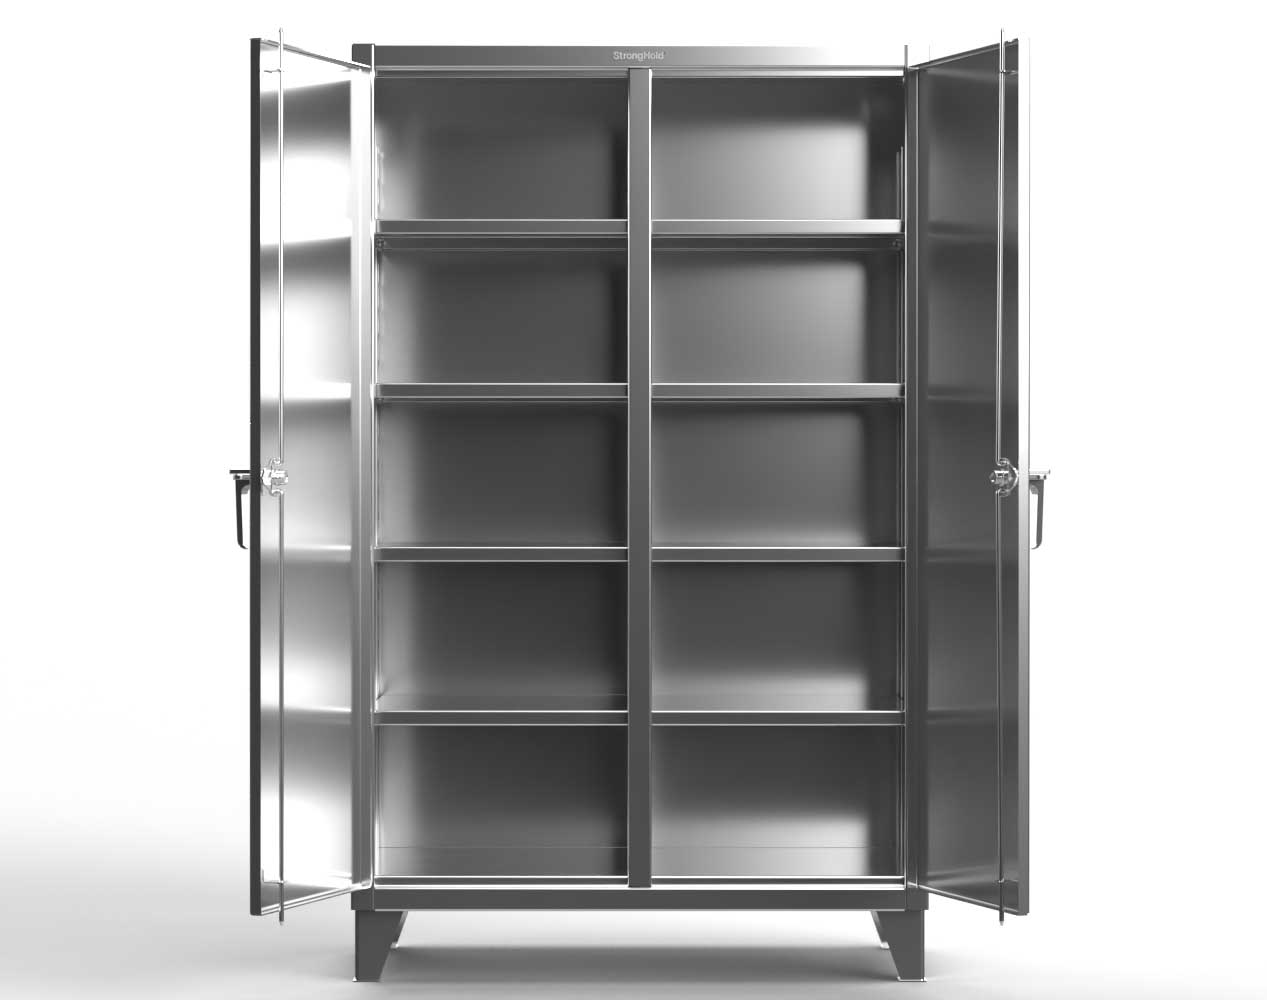 Extra Heavy Duty 12 GA Stainless Steel Double Shift Cabinet with 8 Shelves – 36 In. W x 24 In. D x 78 In. H